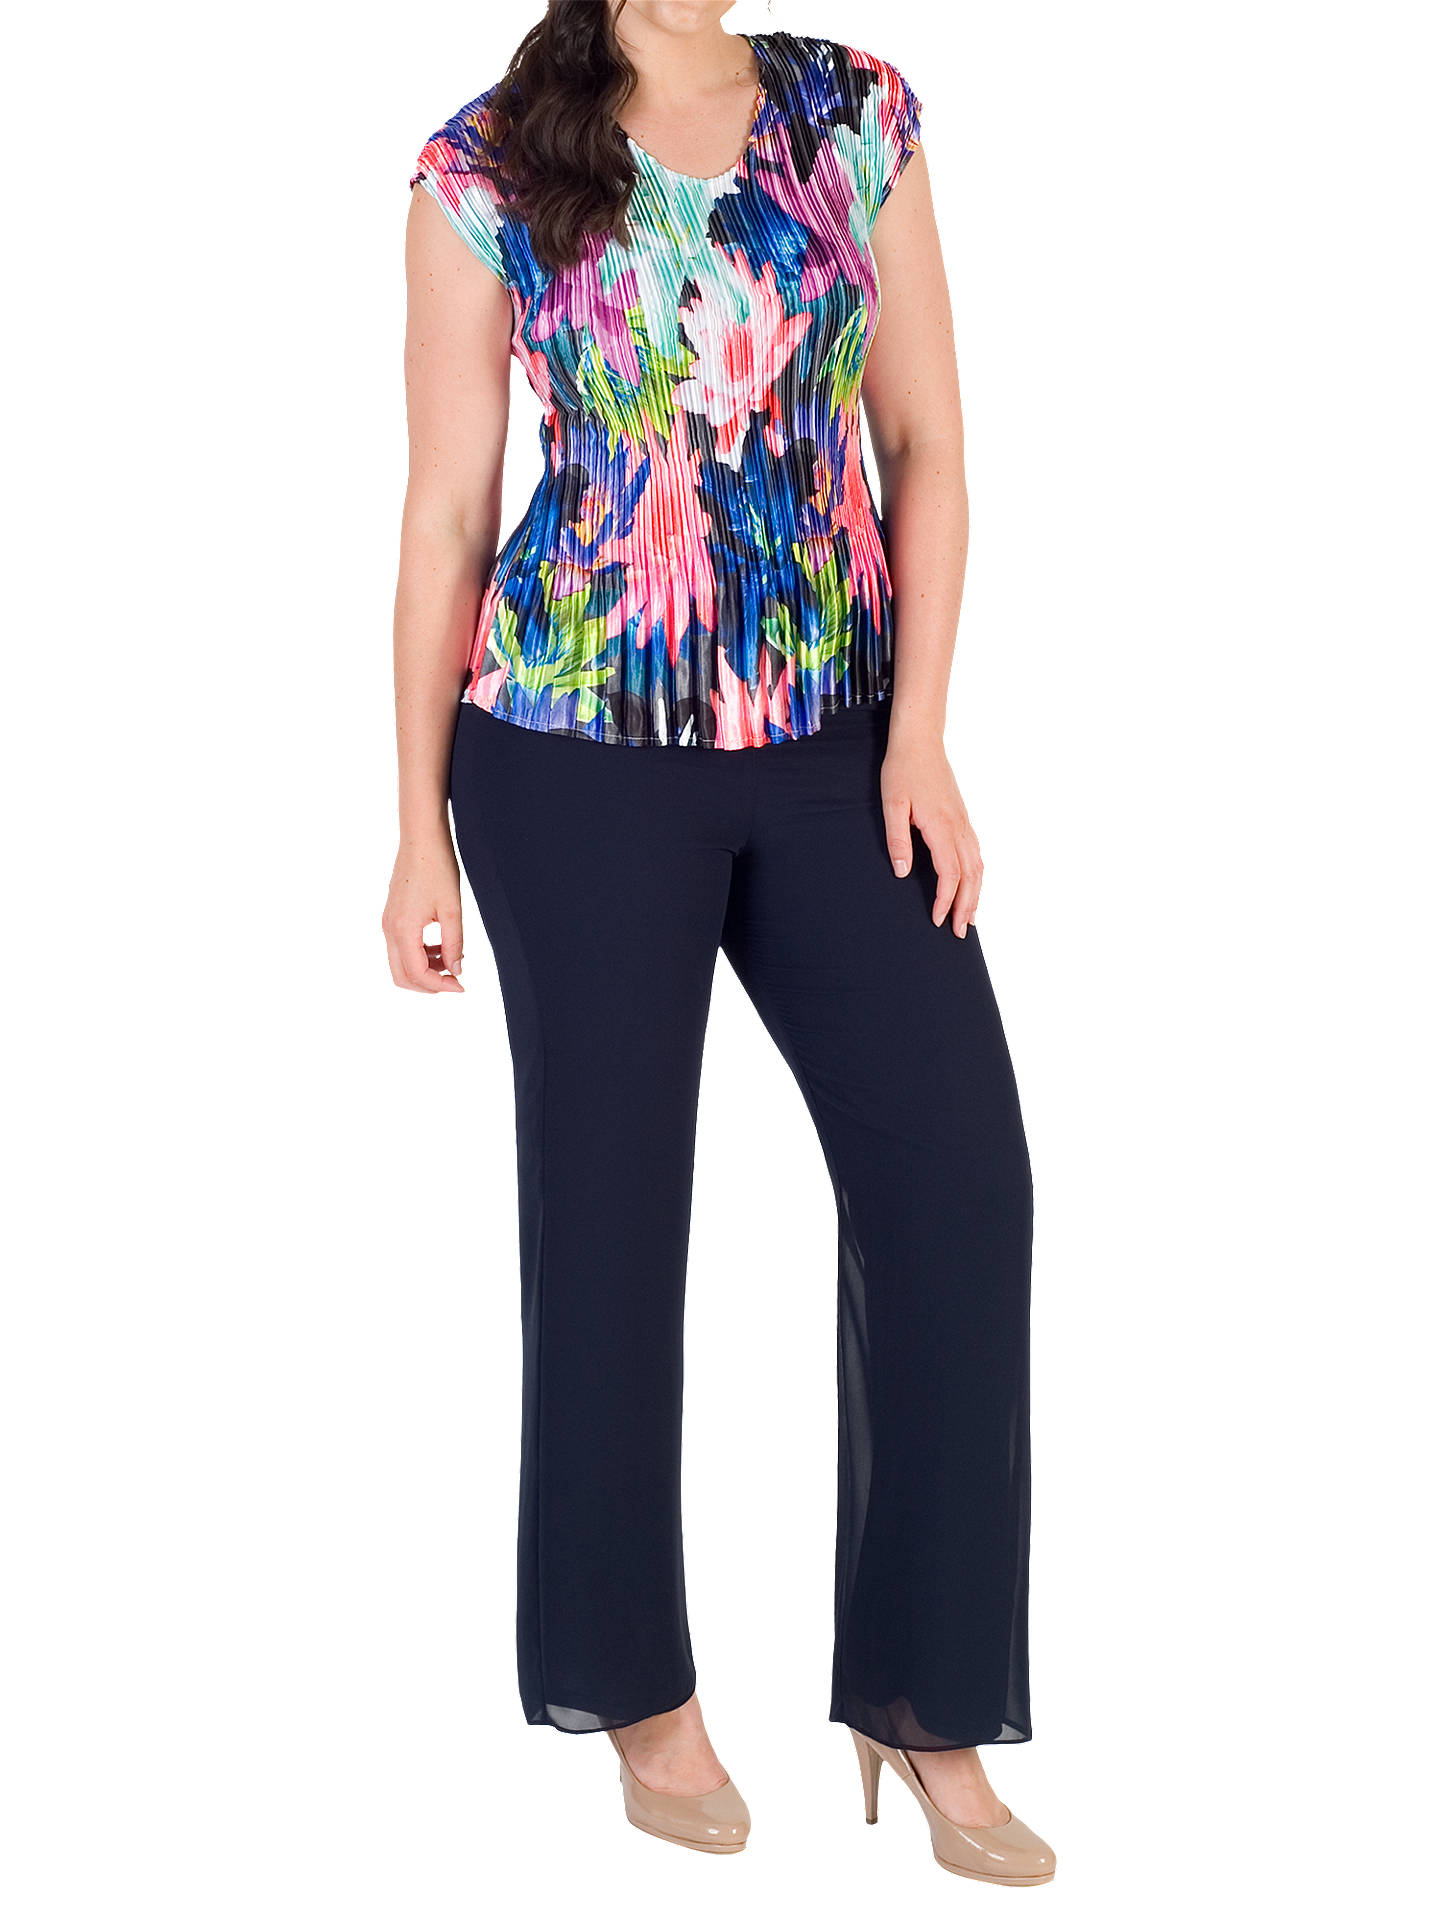 BuyChesca Pleated Top, Multi, 12-14 Online at johnlewis.com